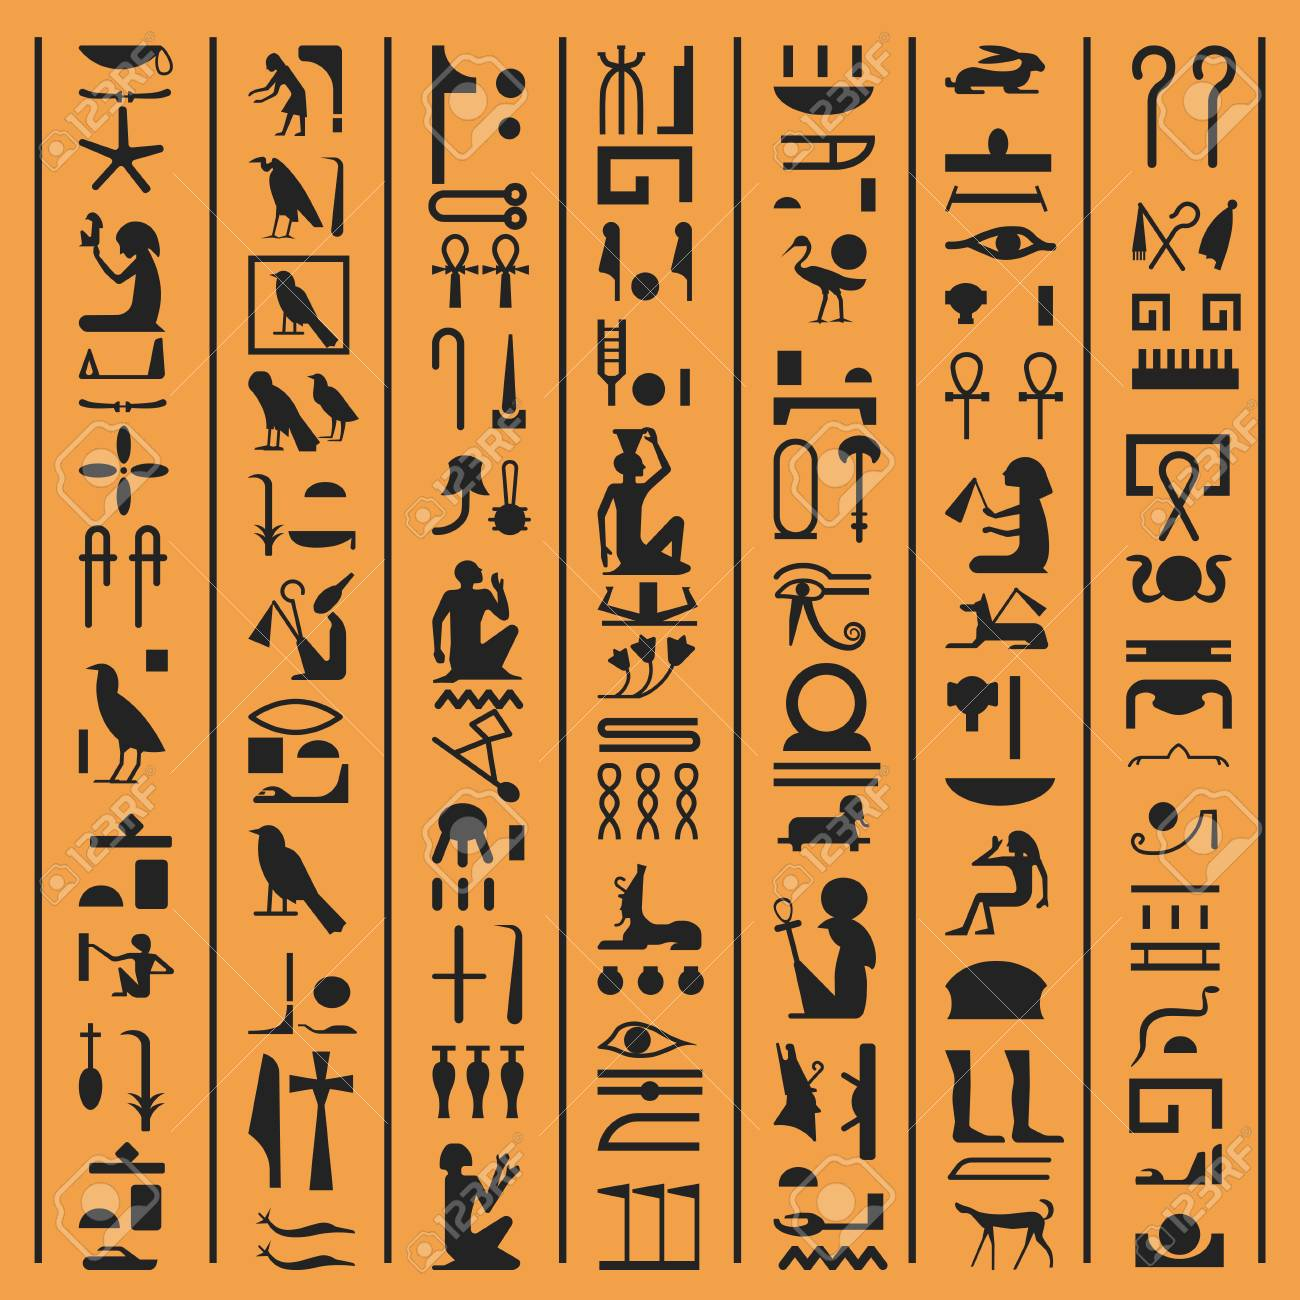 Egyptian hieroglyphs or ancient Egypt letters vector background.